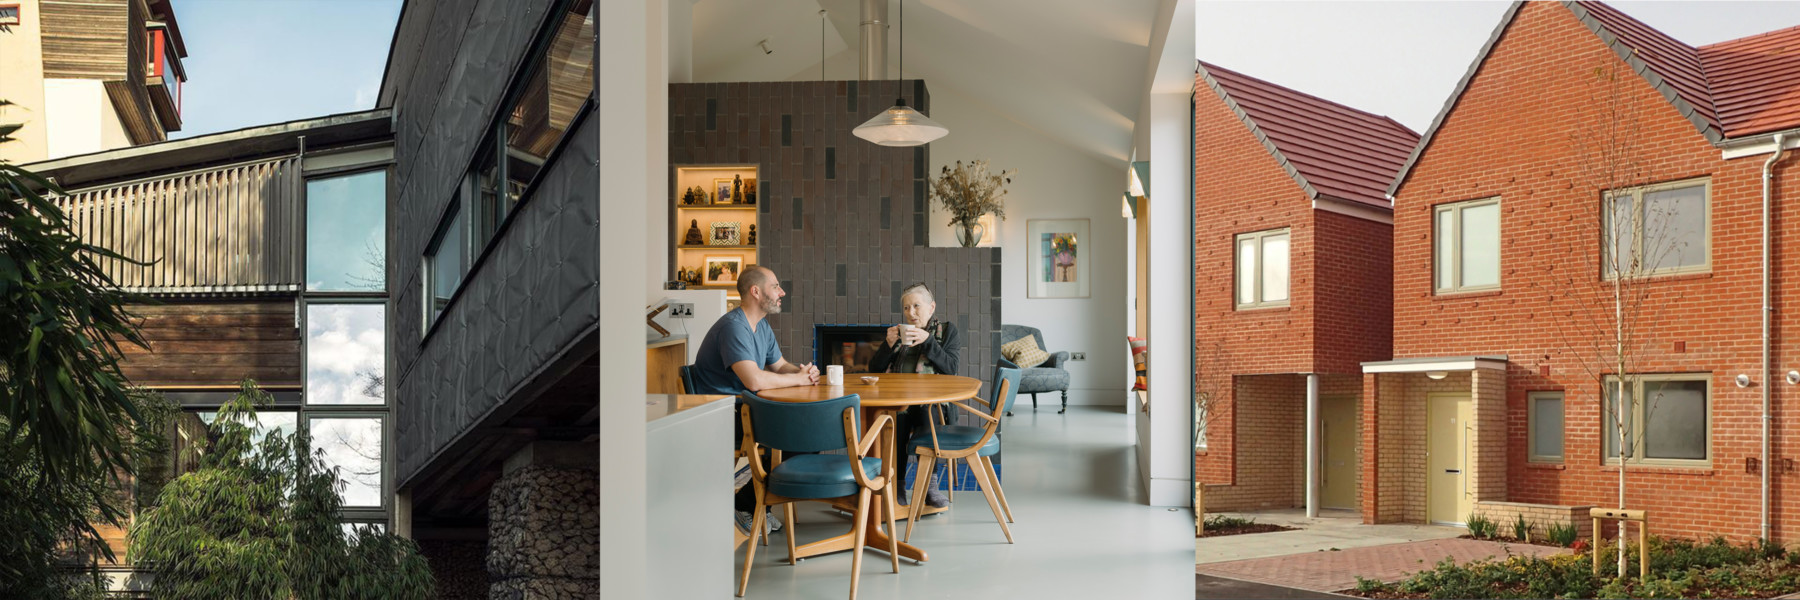 Sarah-Wigglesworth-Architects Sustainable Housing SWA Projects